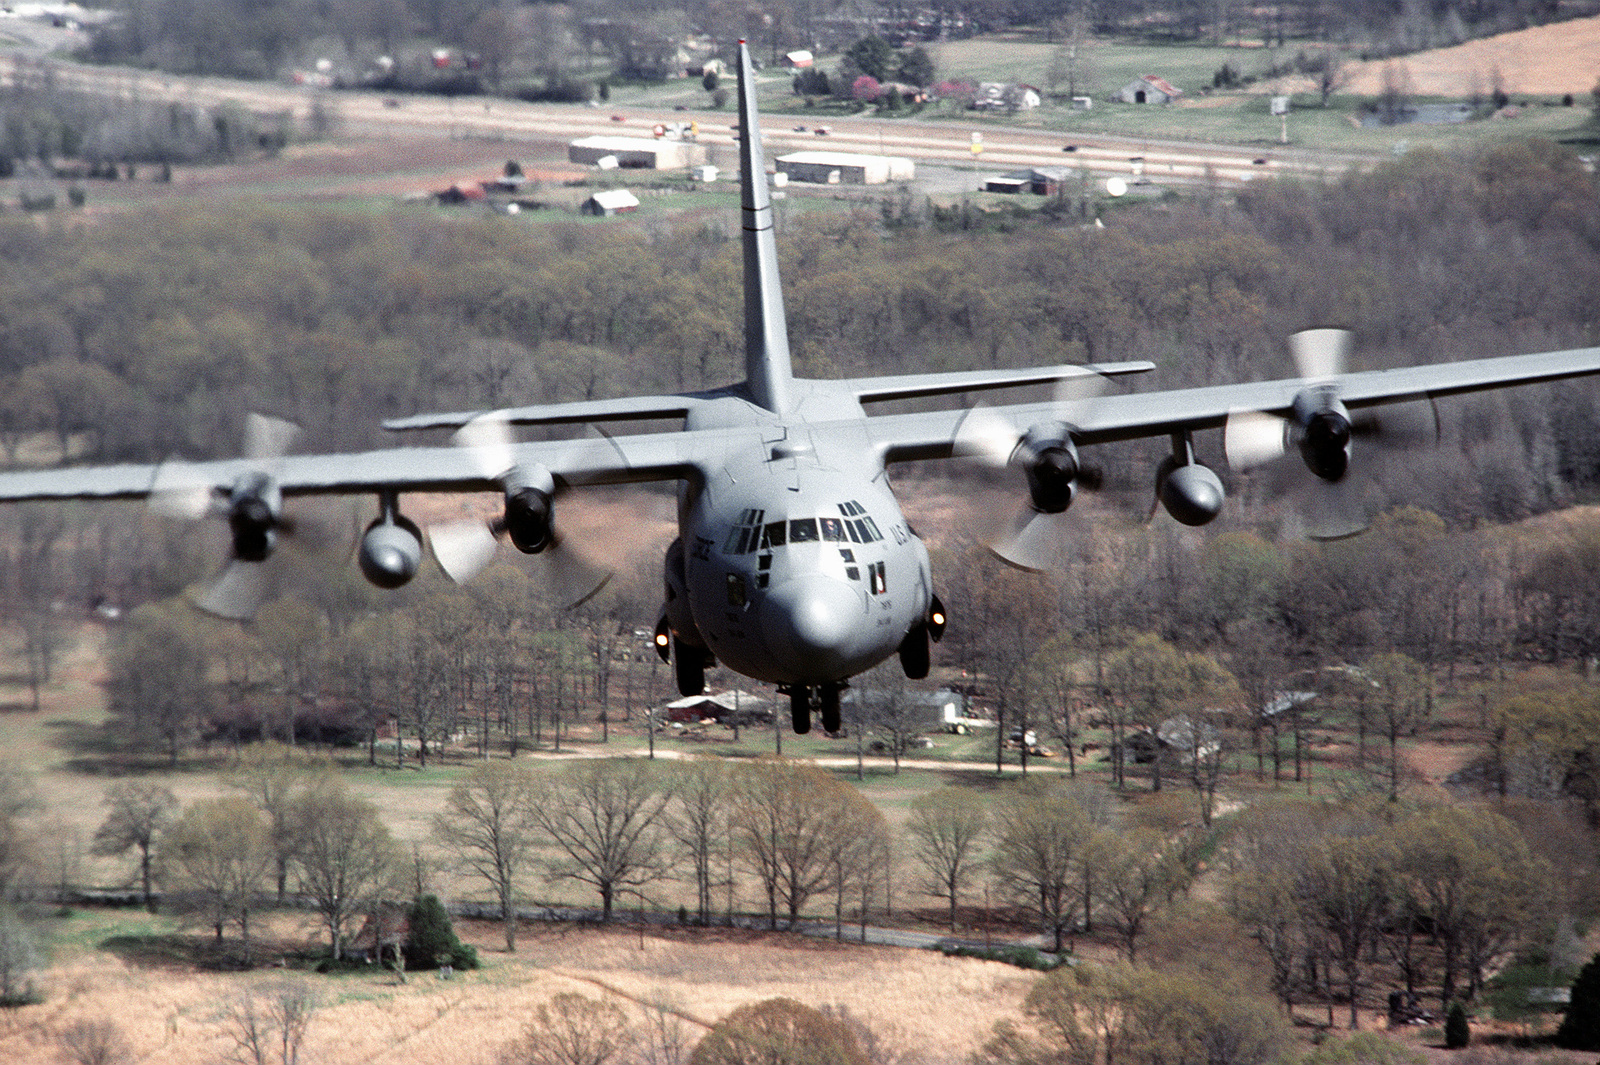 Air to Air front view of a 314th Airlift Wing, Air Mobility Command, C-130 Hercules as it flies the approach to Little Rock Air Force Base. Exact Date Shot Unknown